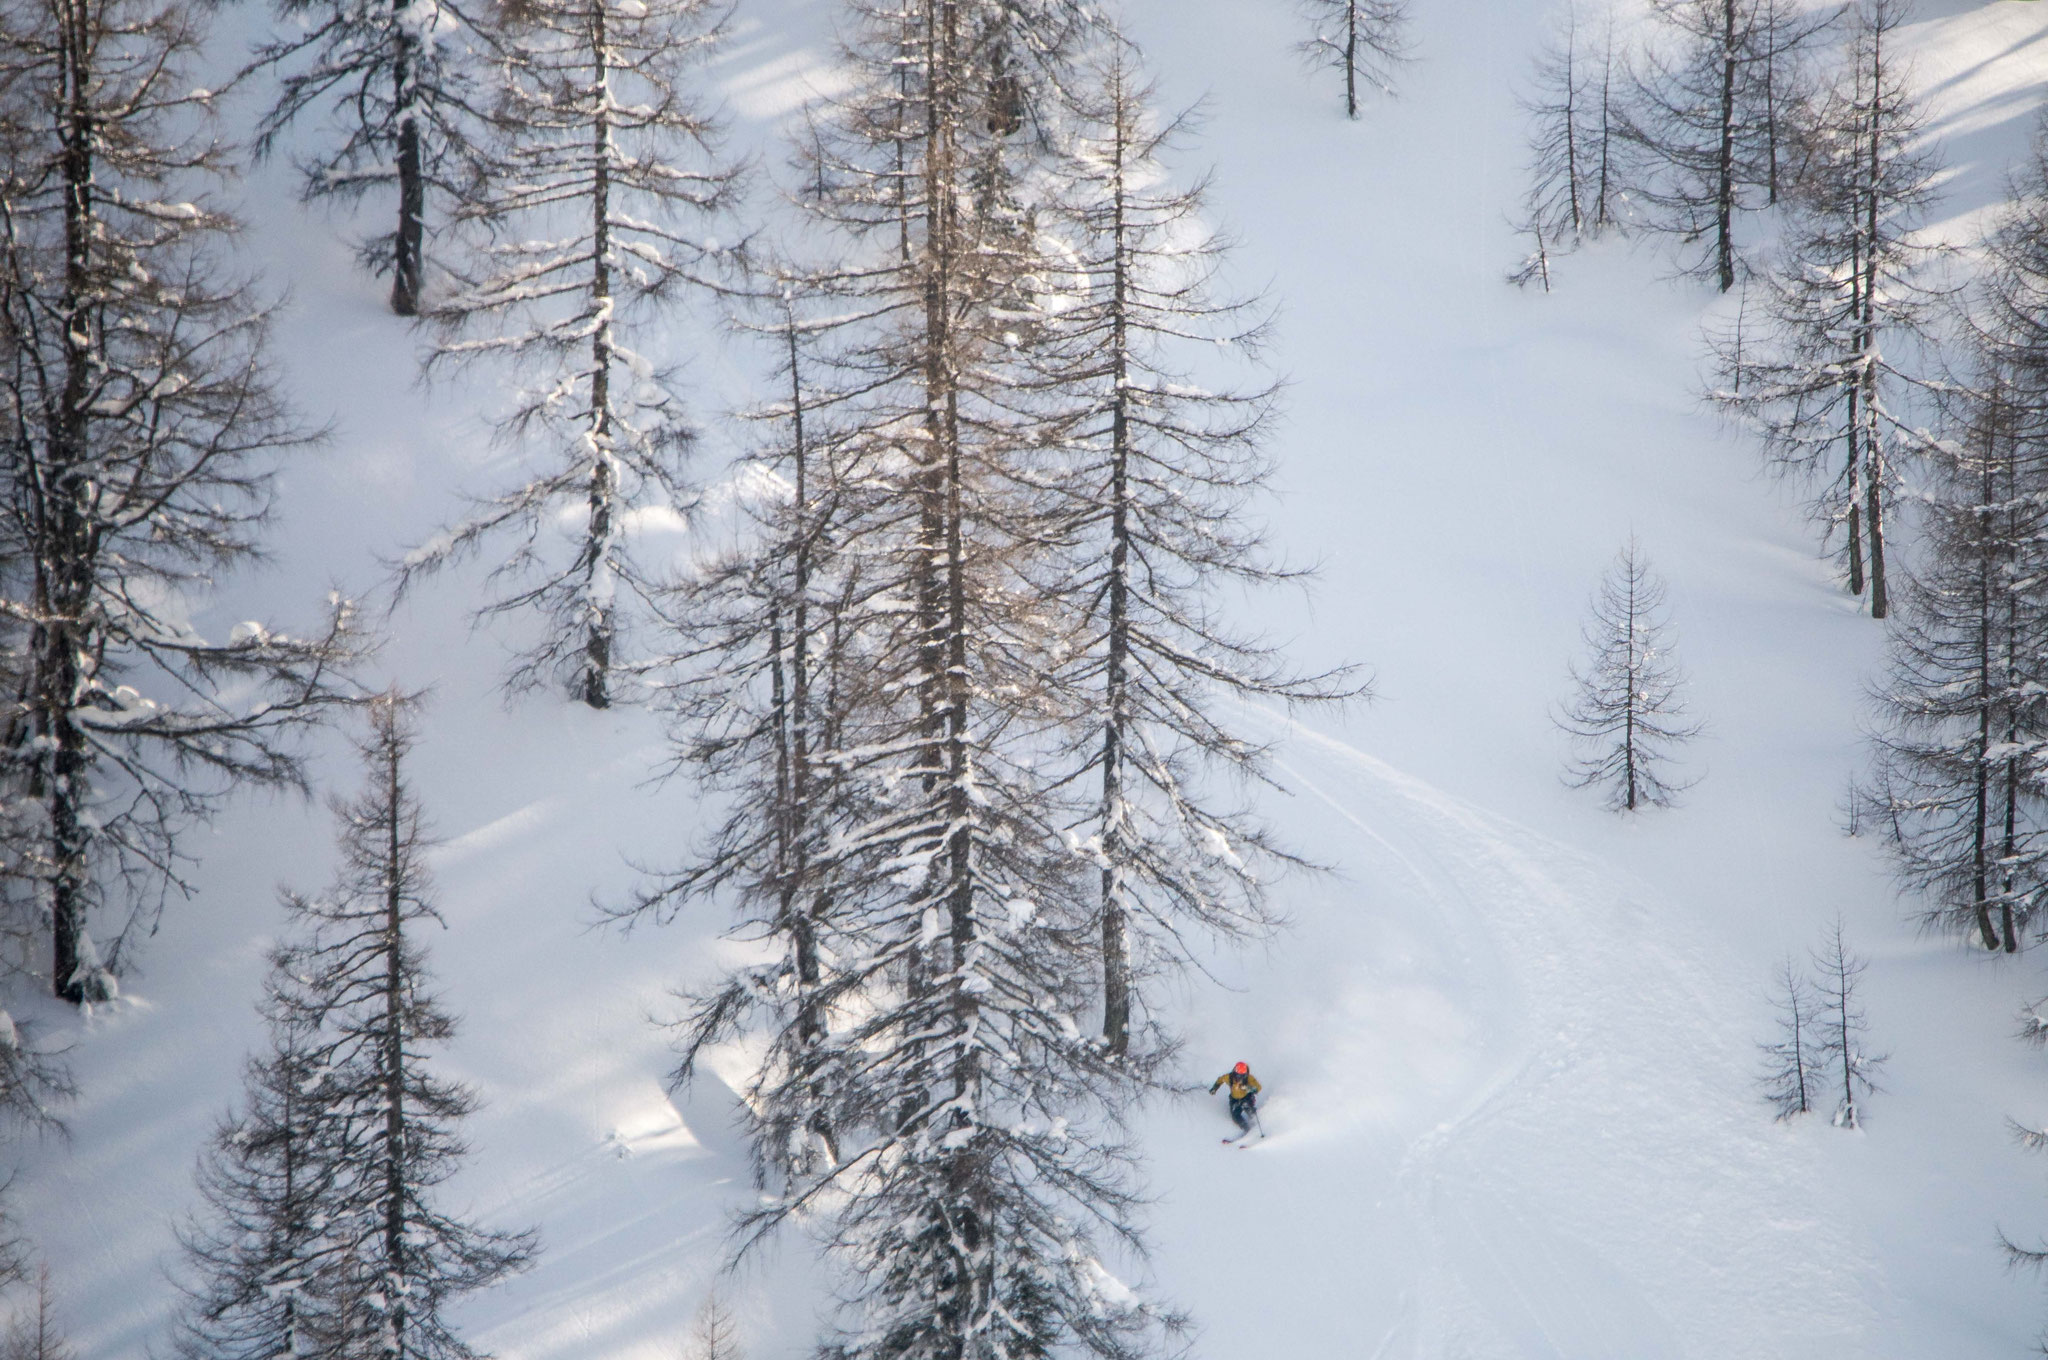 Backcountry Obertauern